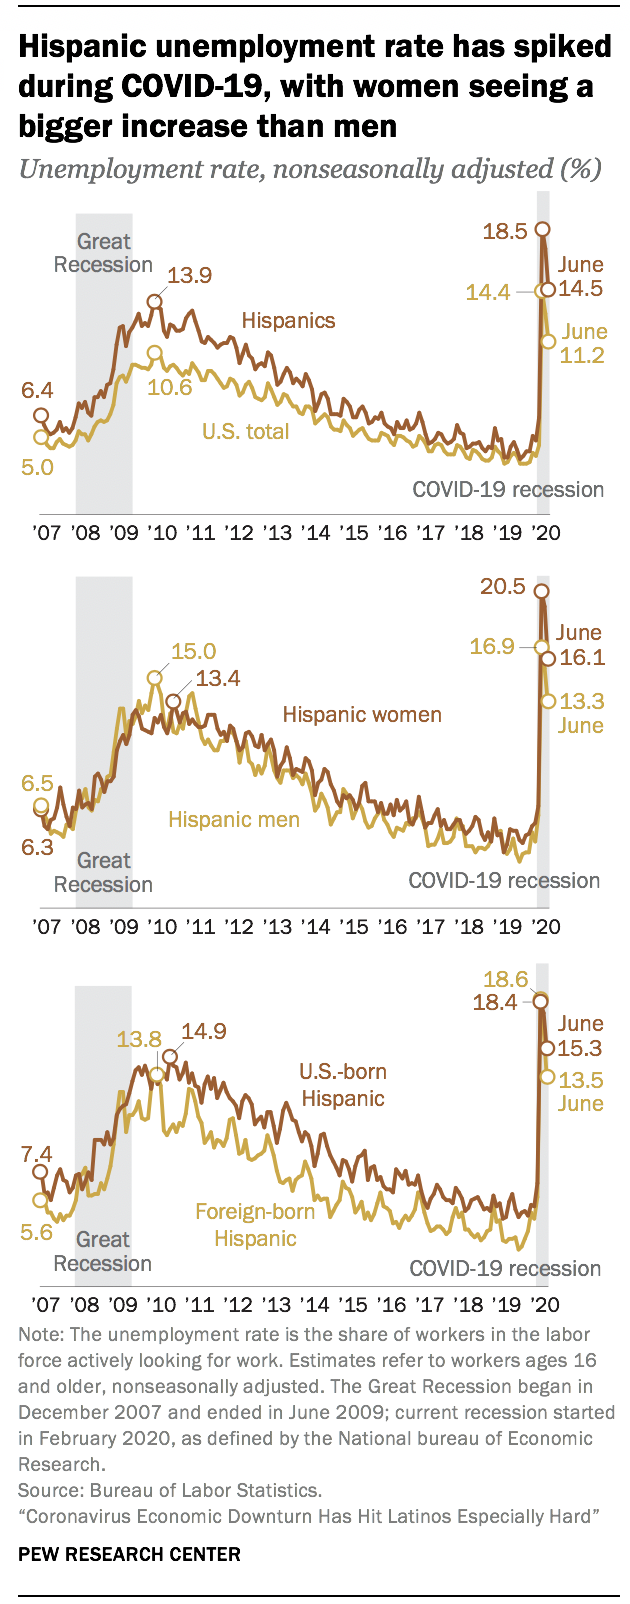 Hispanic unemployment rate has spiked during COVID-19, with women seeing a bigger increase than men